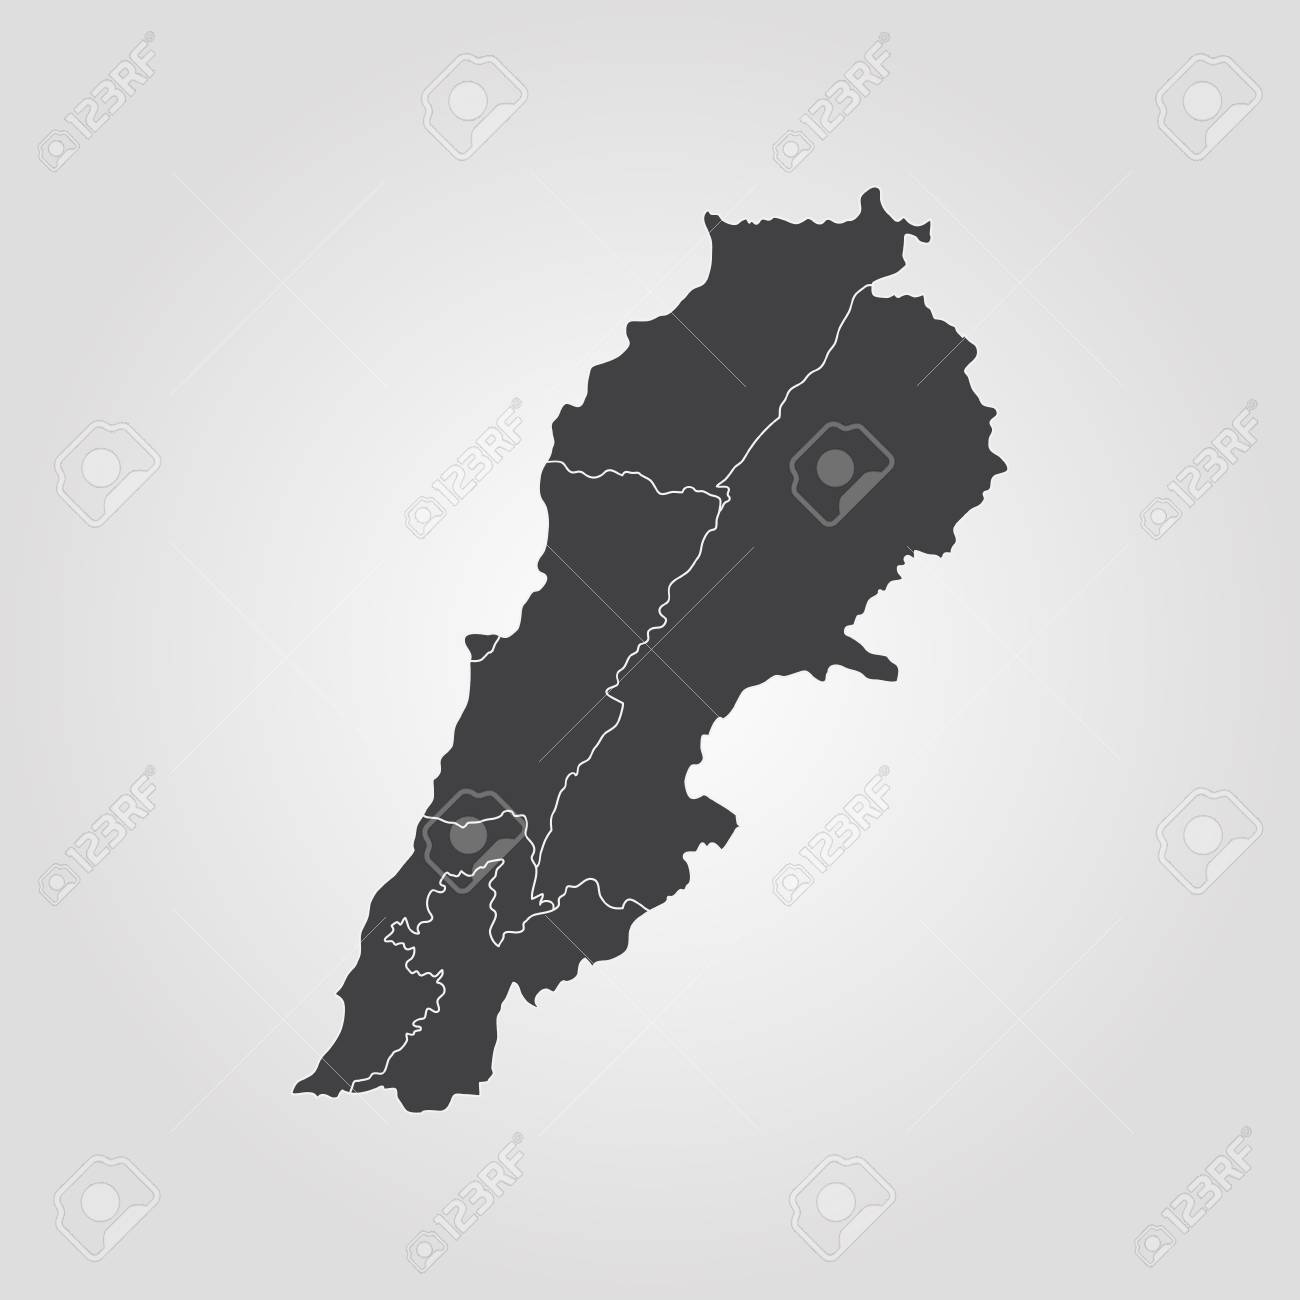 Map Of Lebanon. Vector Illustration. World Map Royalty Free Cliparts ...